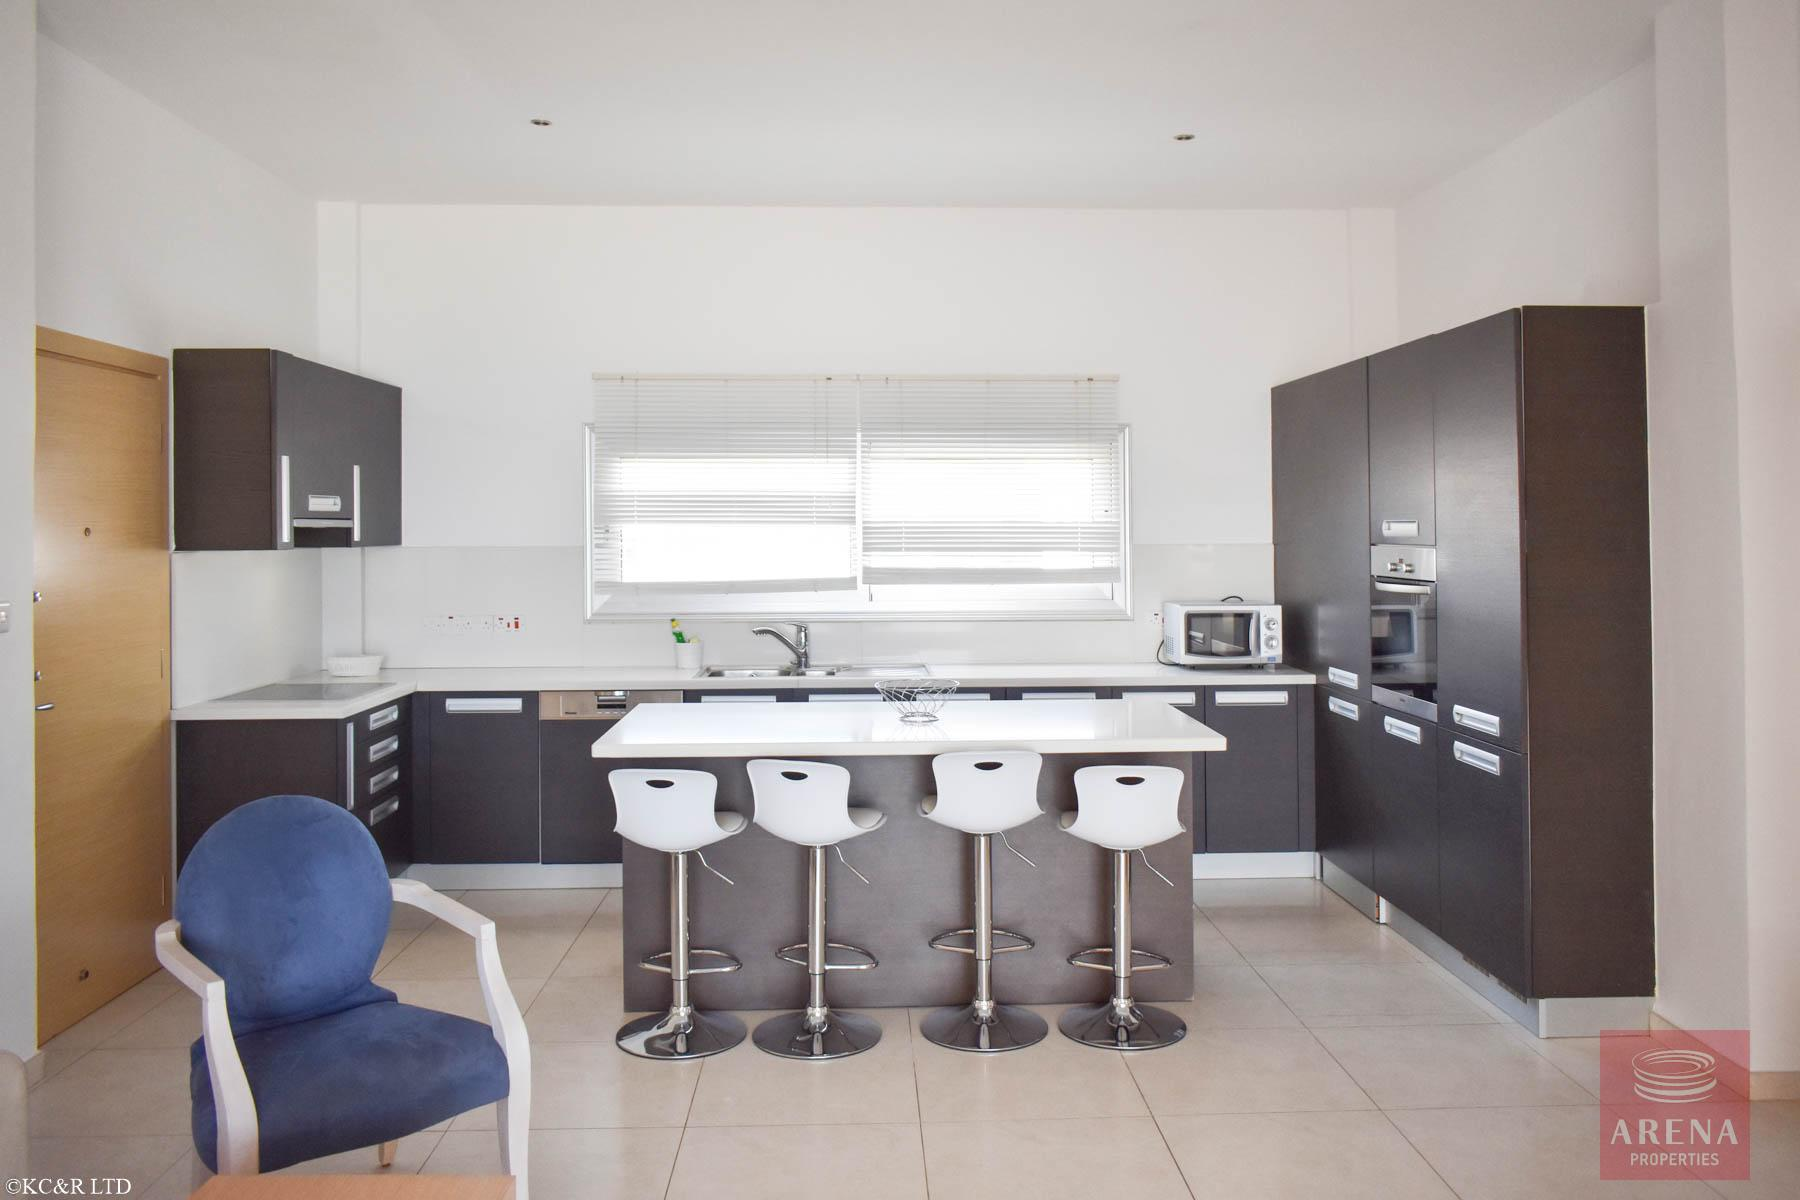 Seafront Apartment in Protaras for sale - kitchen